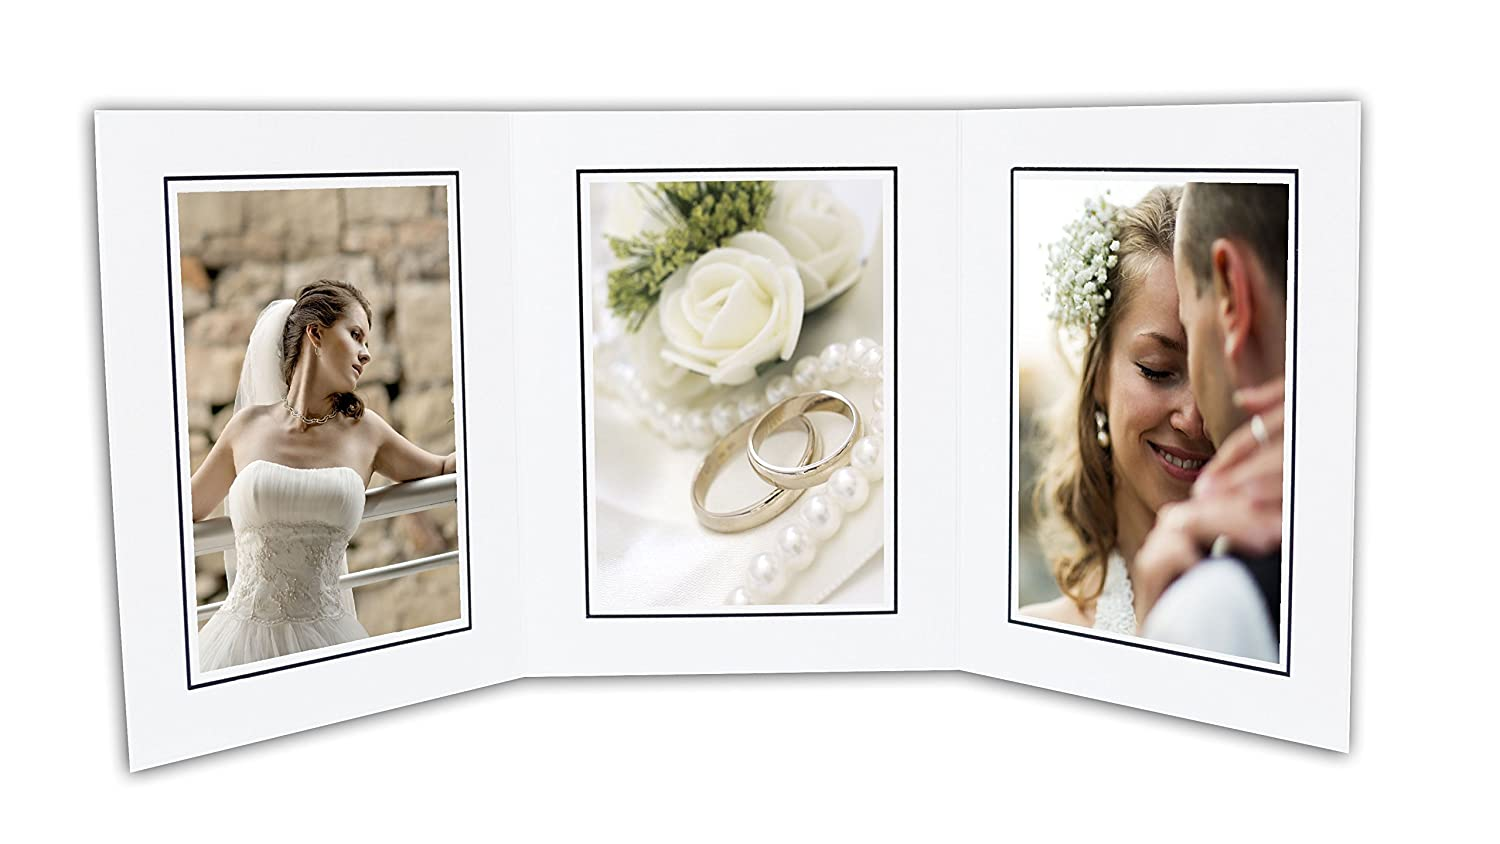 Golden State Art, Cardboard Photo Folder 3 5x7 Photo (Pack of 50) GS005 White Color